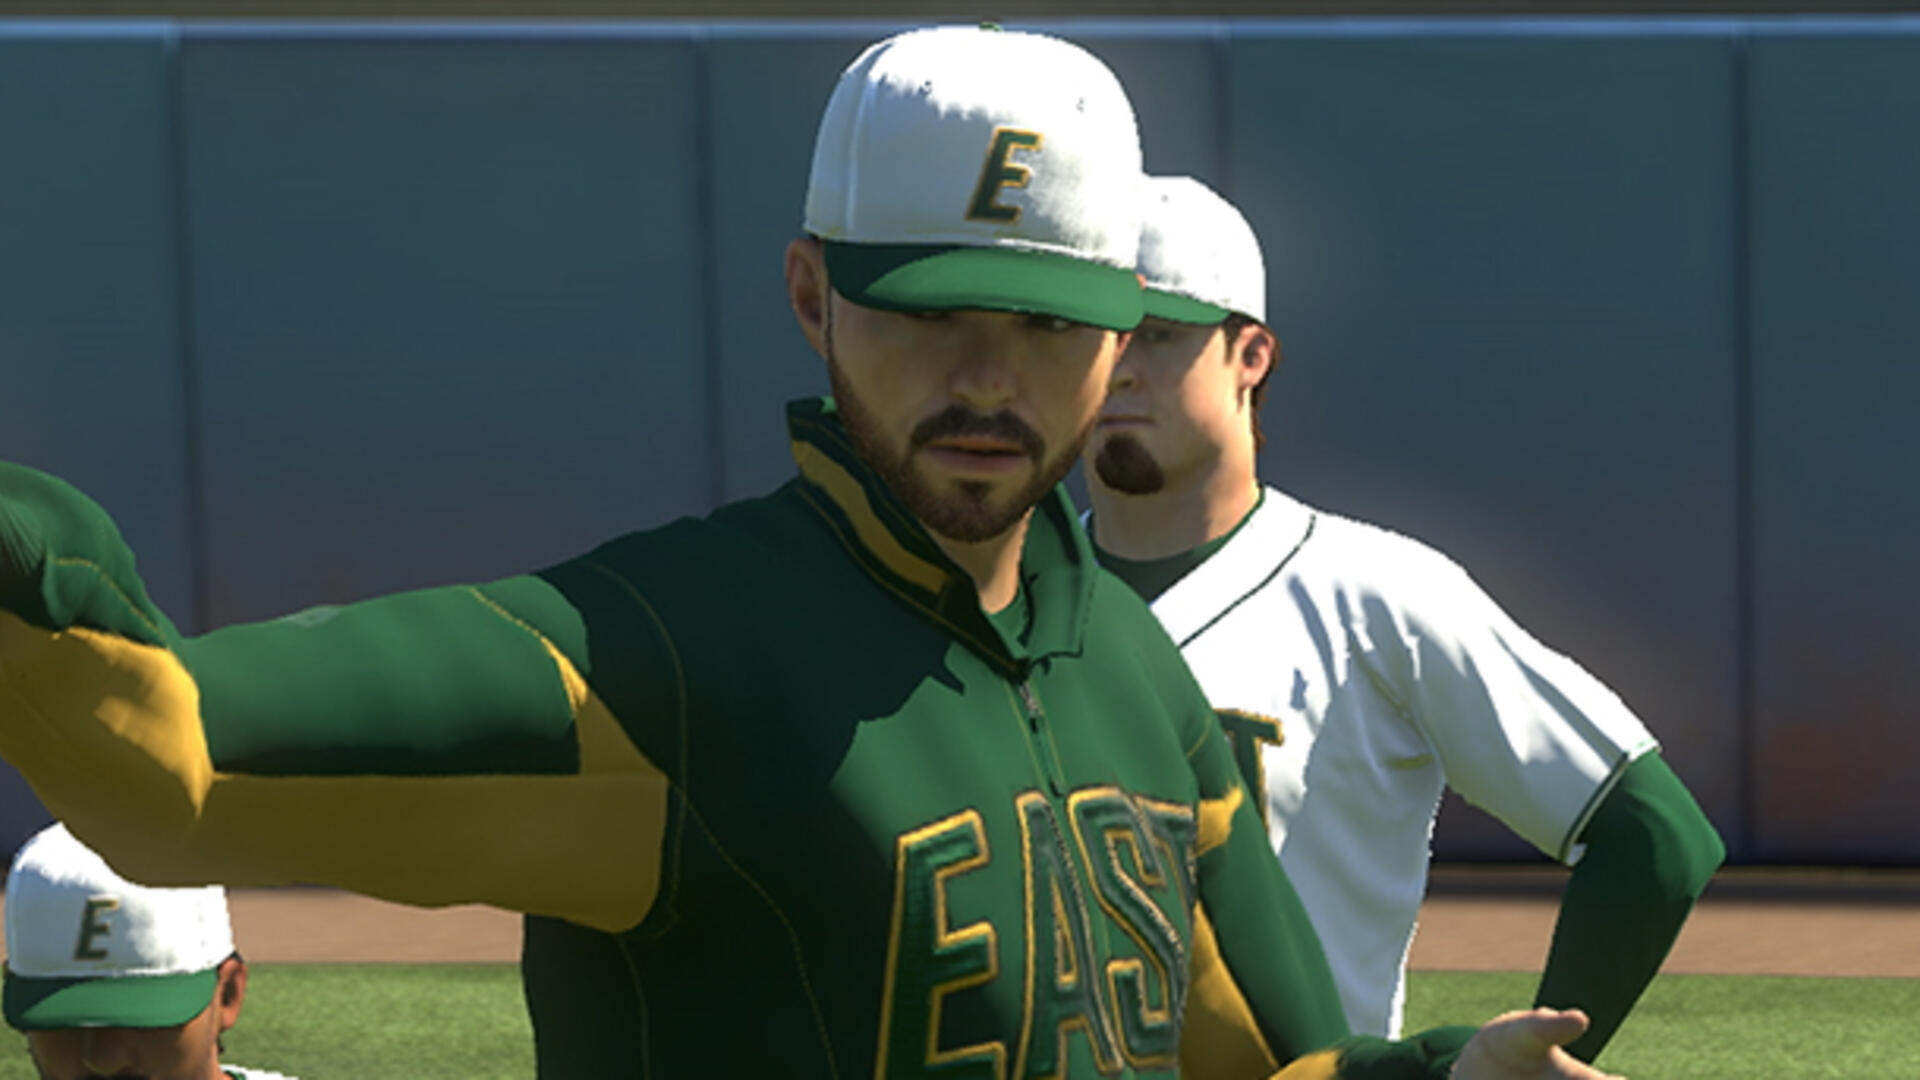 MLB The Show 18 is Dropping Microtransactions Amid Road to the Show Overhaul